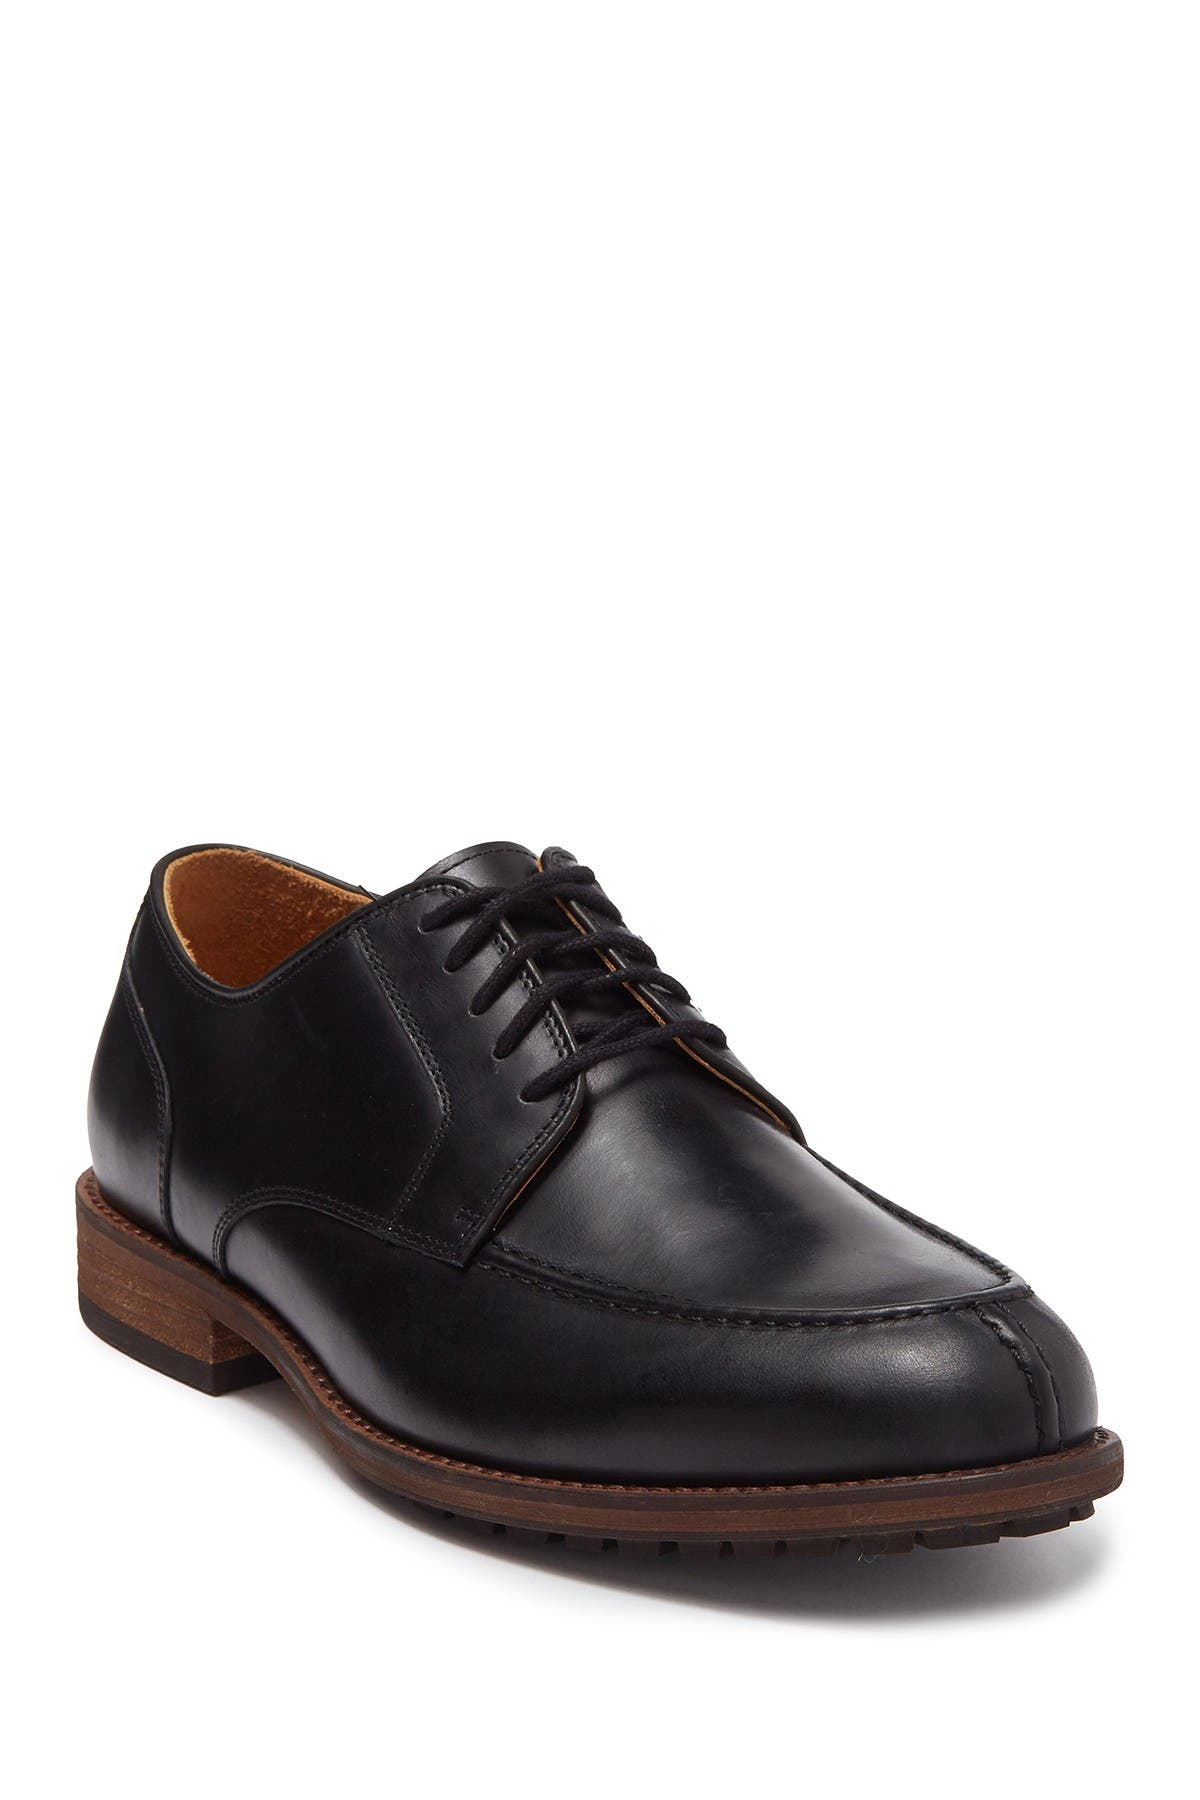 Image of Warfield & Grand Hughes Burnished Leather Derby